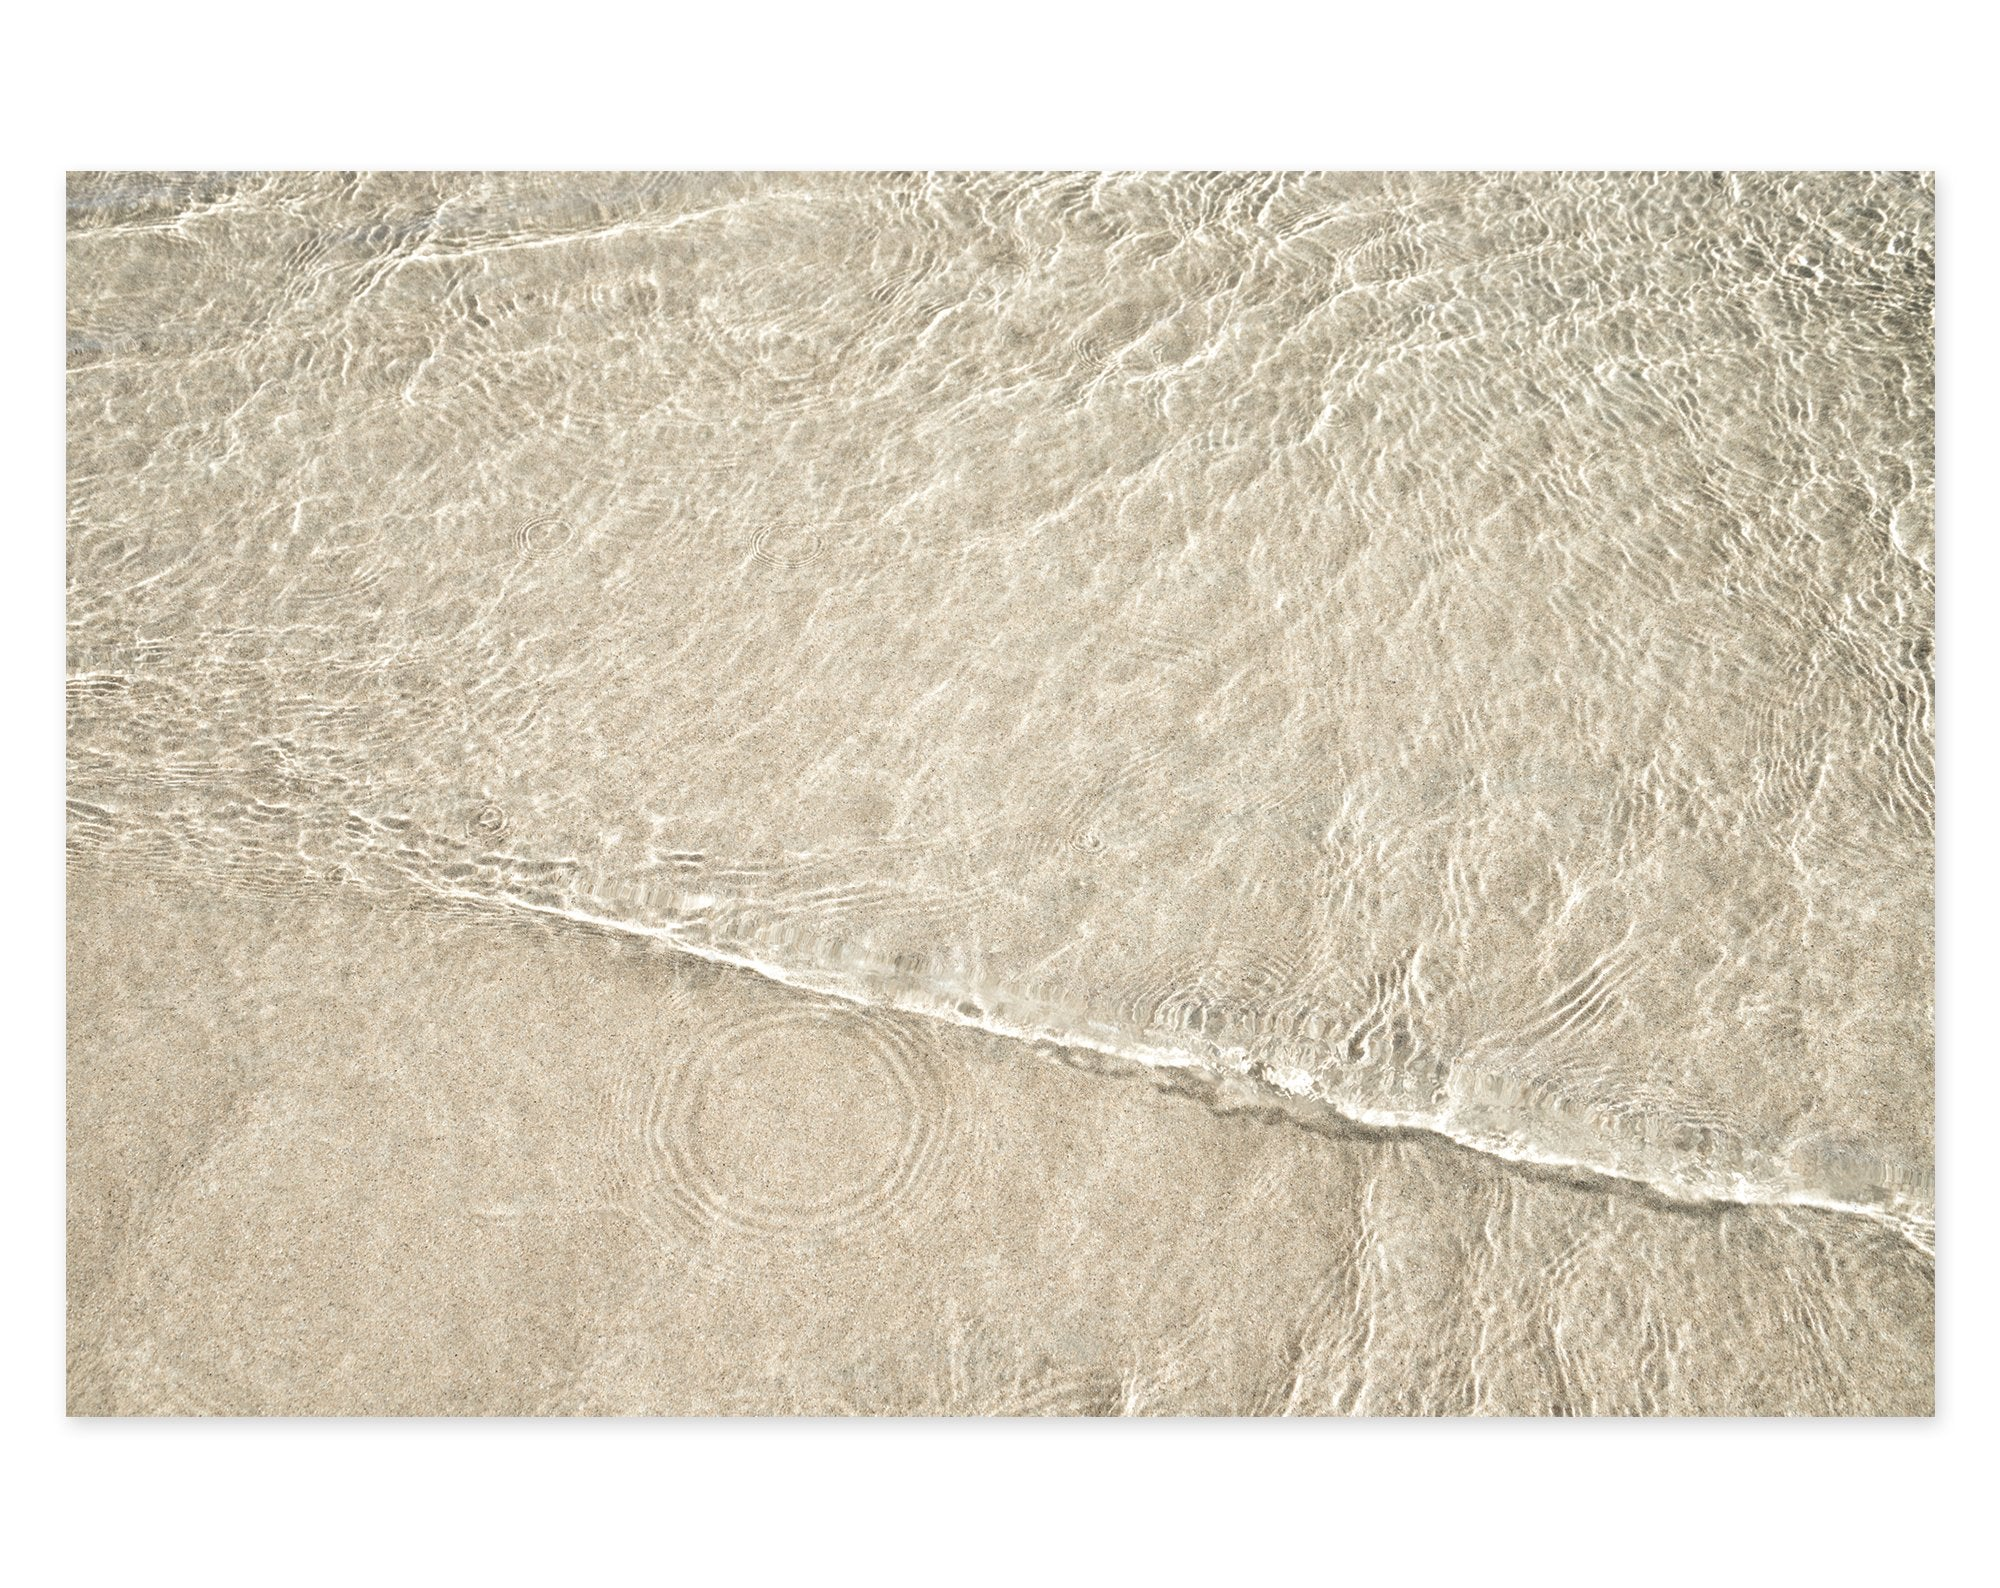 Shallow Water No 9 - Ocean waves art print by Cattie Coyle Photography